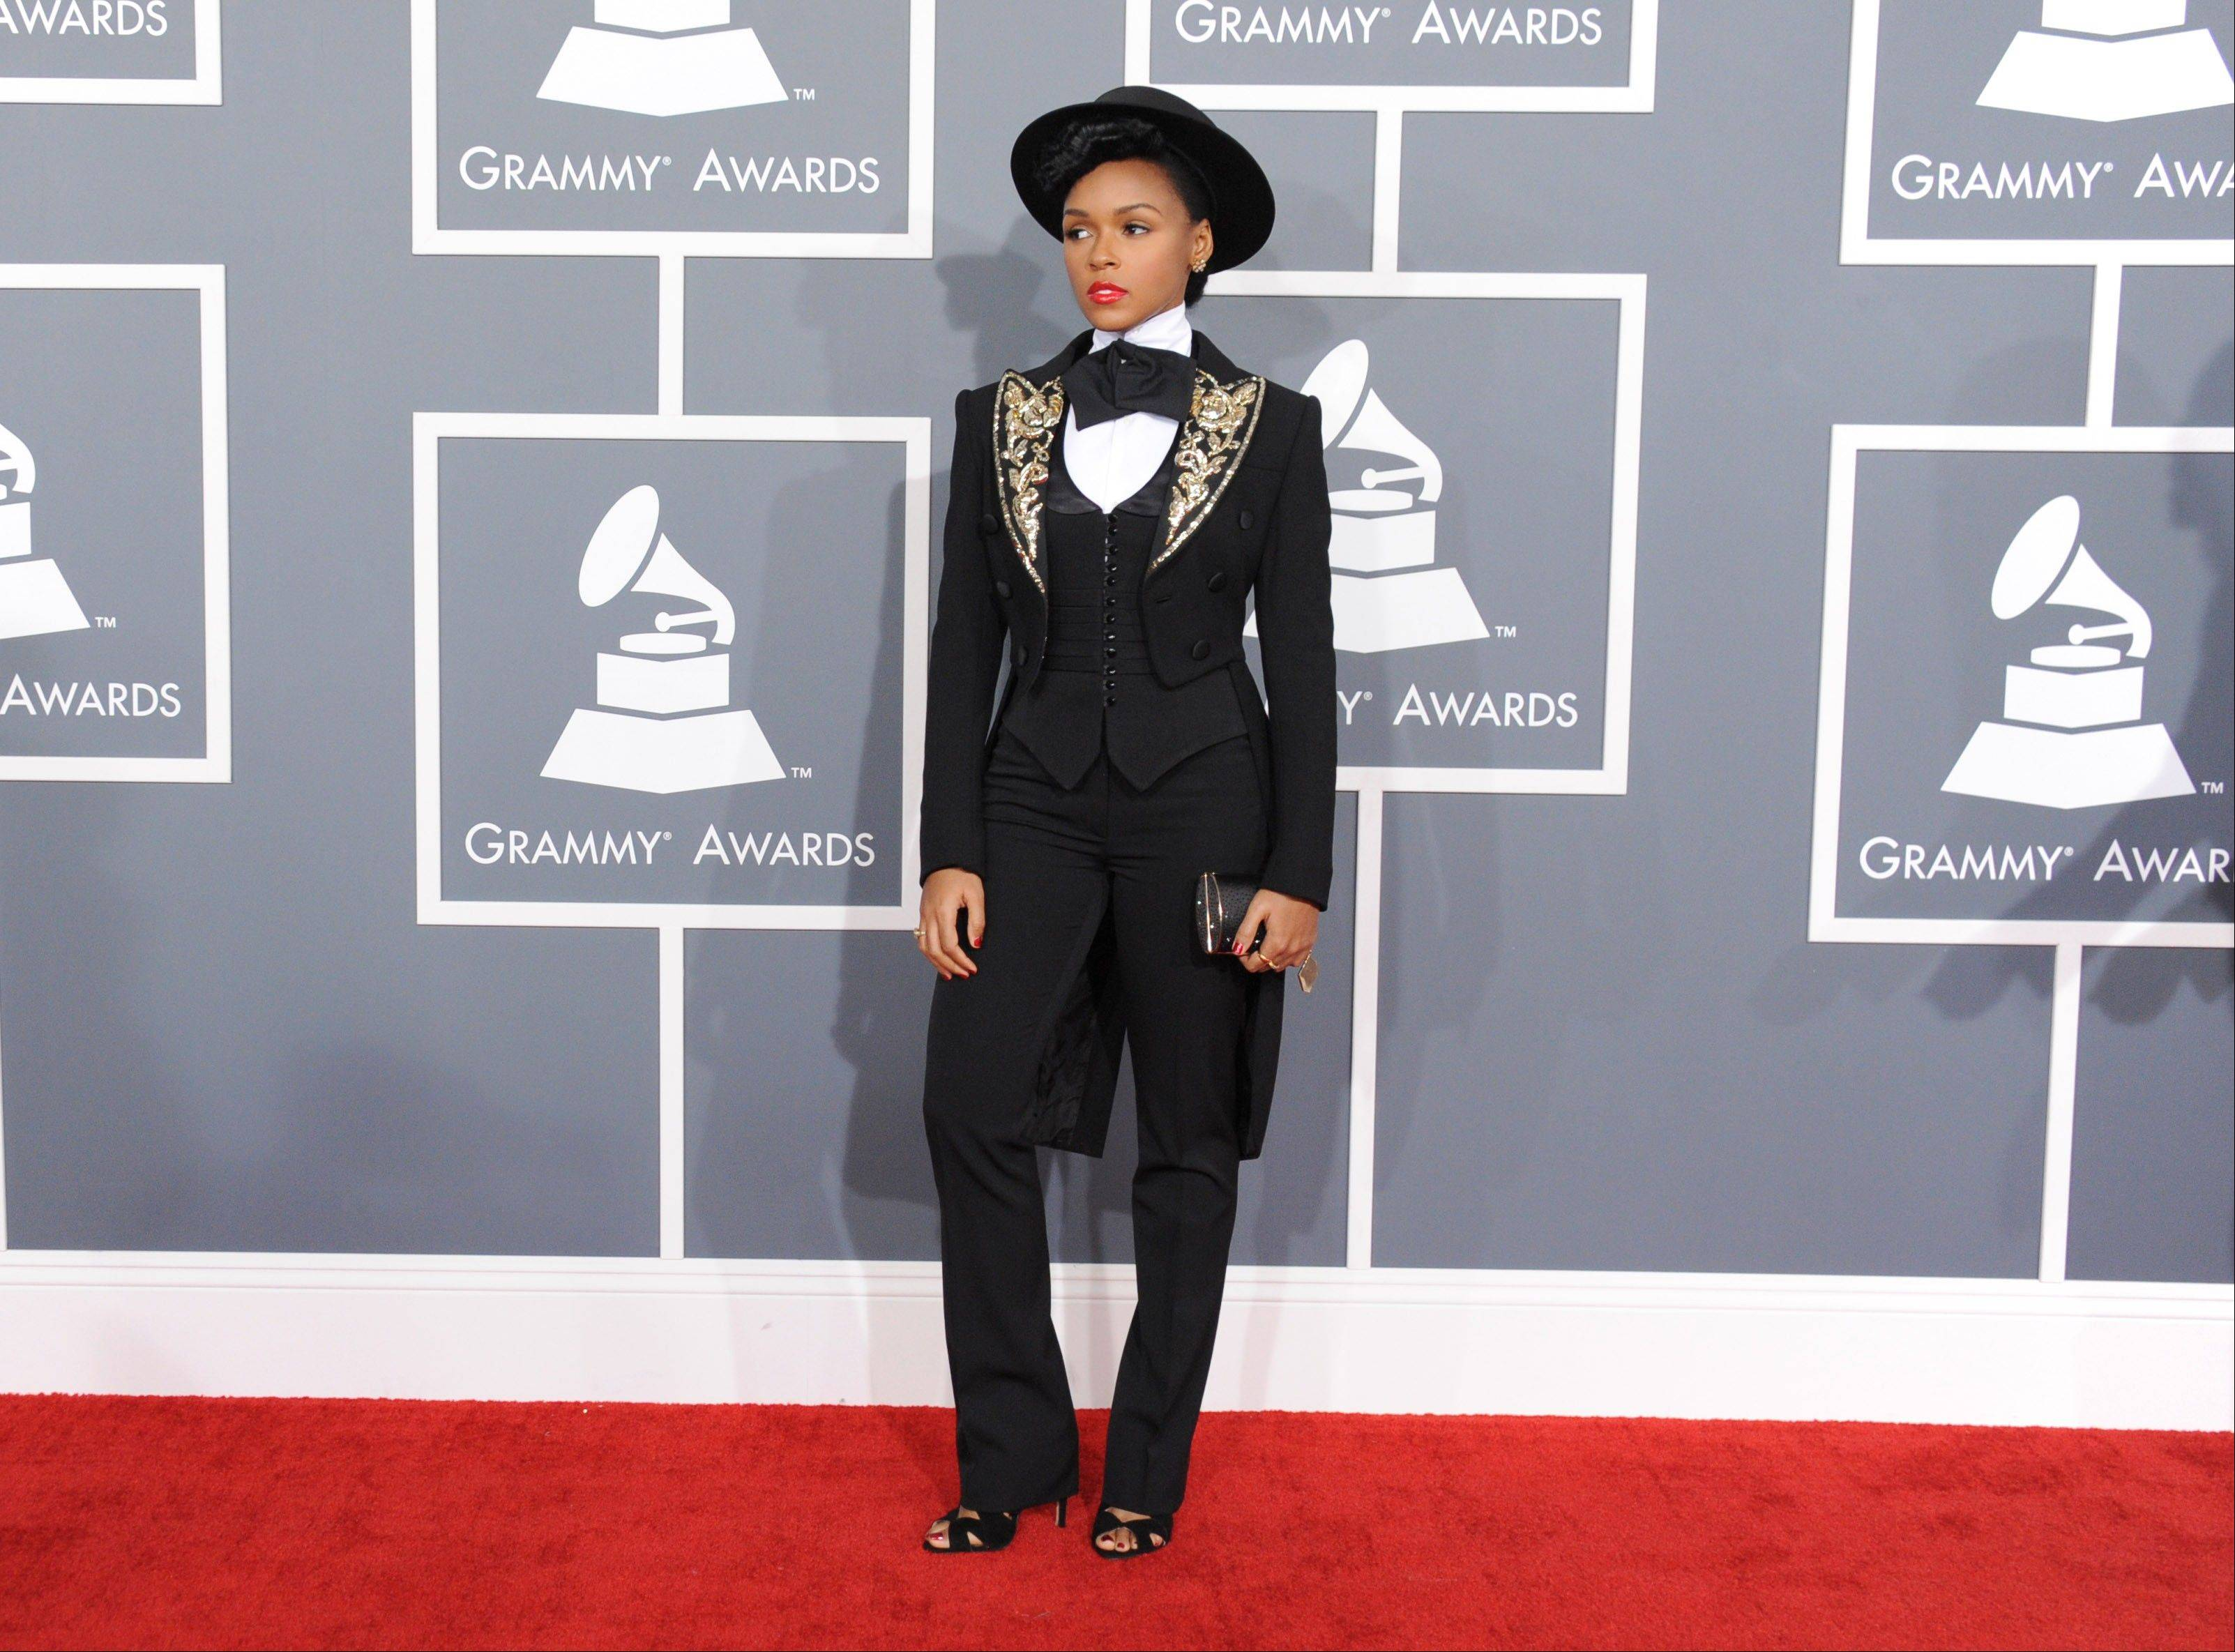 Janelle Monae arrives at the 55th annual Grammy Awards on Sunday, Feb. 10, 2013, in Los Angeles.